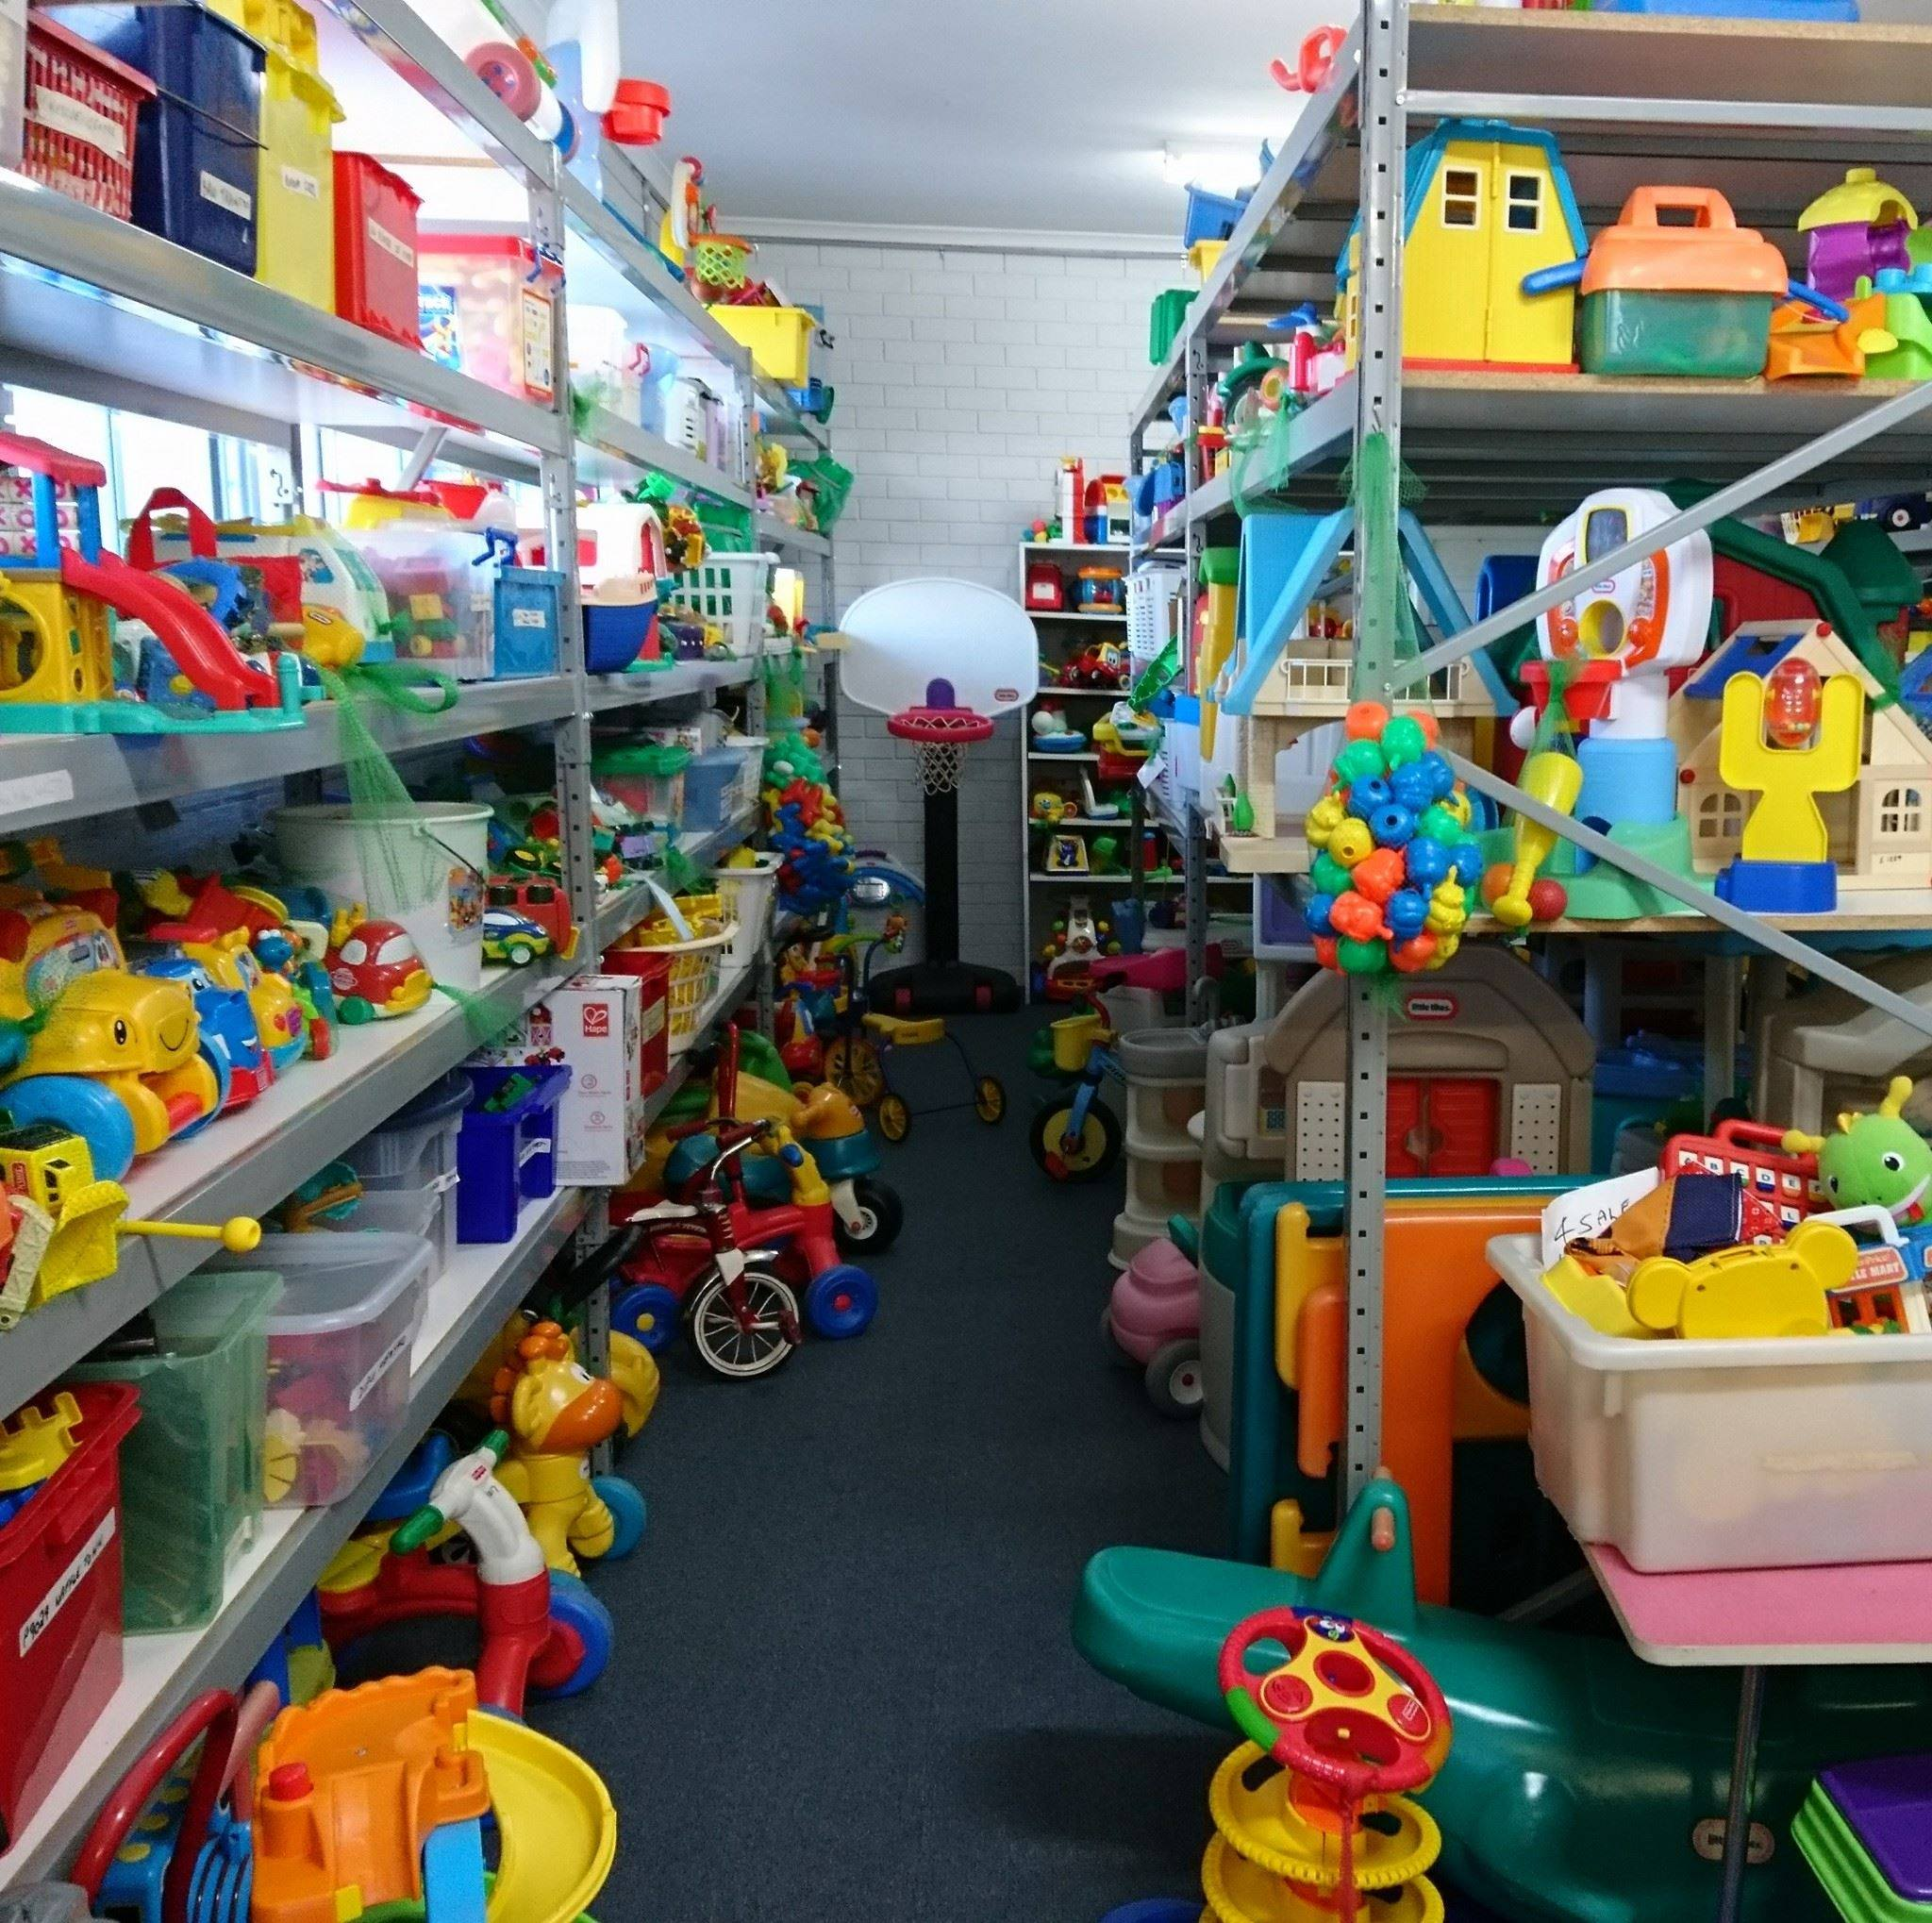 Broadmeadows Toy Library